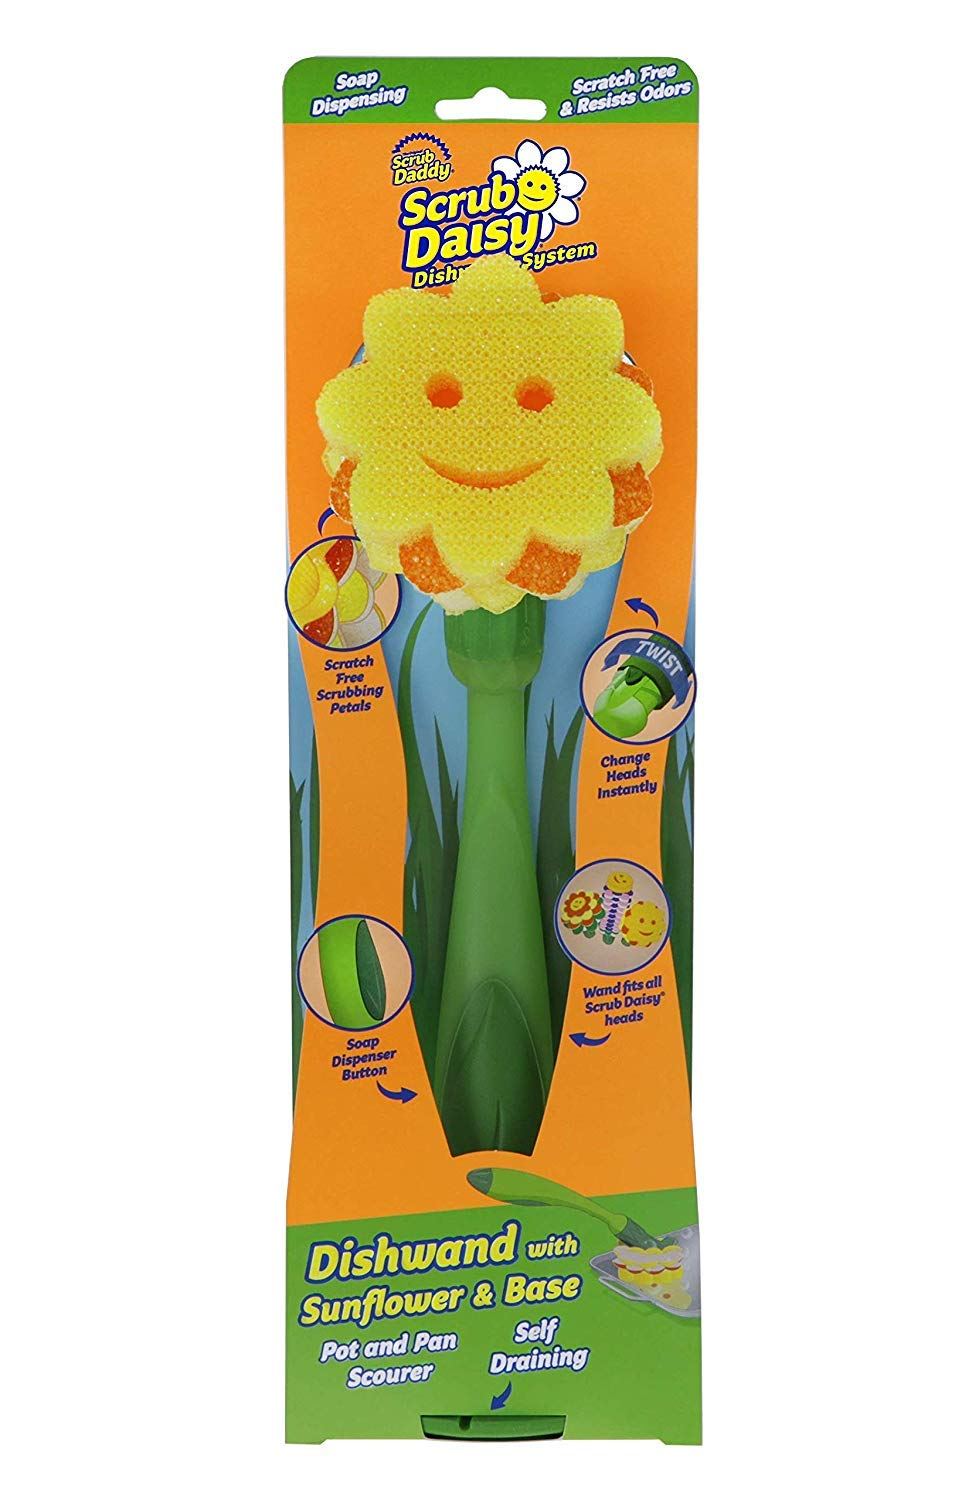 Scrub Daddy- Sunflower Pot & Pan Scourer 3 Piece Combo - Soap Dispensing Dishwand, Non-toxic Sponge Head, Self Draining Base, Deep Cleaning, Scratch Free, Multi-surface, Odor Resistant - 1ct